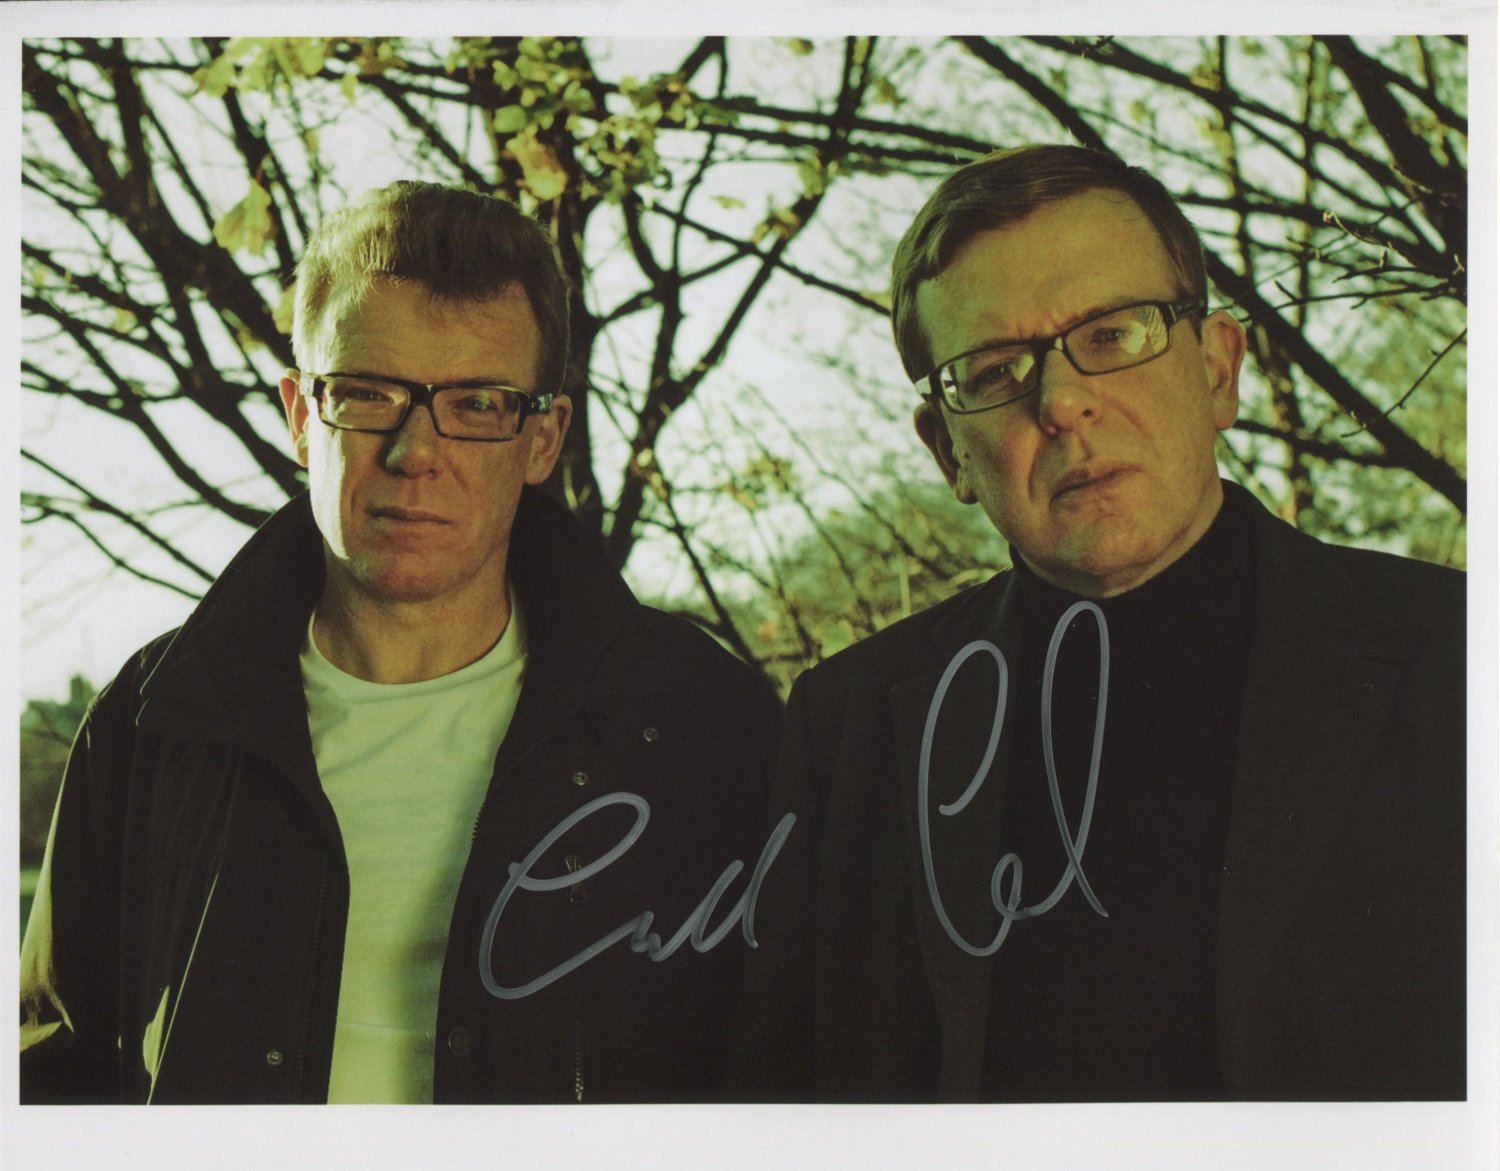 """The Proclaimers (Band) FULLY SIGNED 8"""" x 10"""" Photo + Certificate Of Authentication  100% Genuine"""